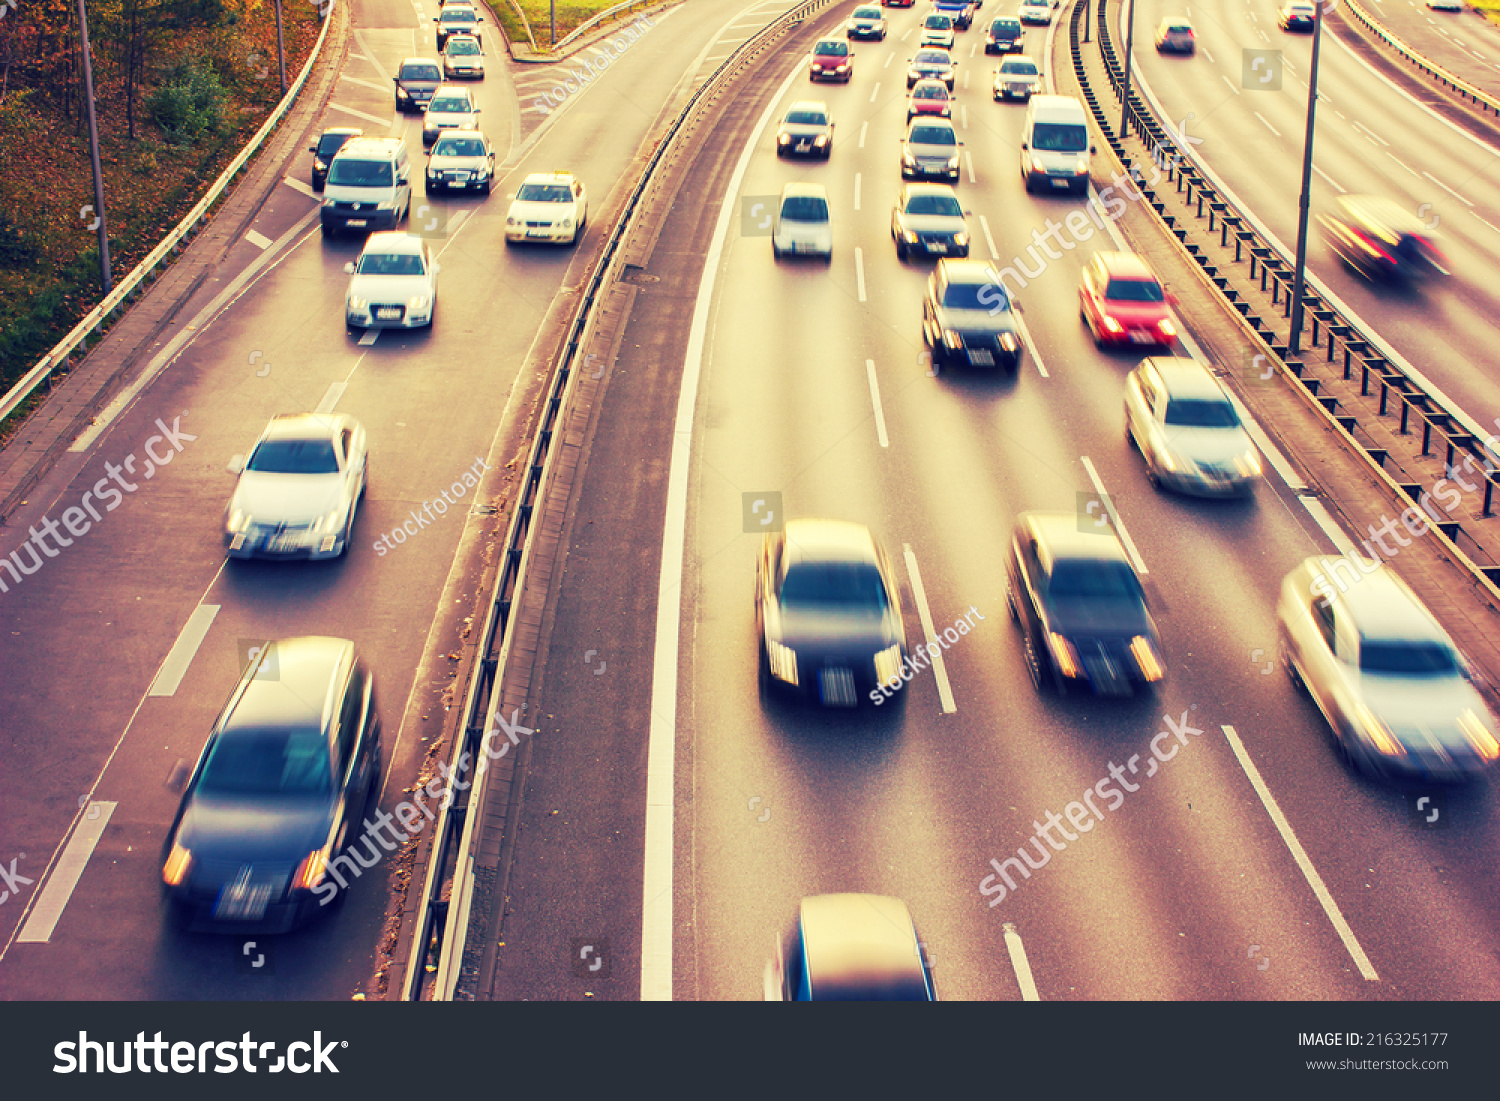 stock-photo-motorway-during-rush-hour-with-a-retro-vintage-216325177